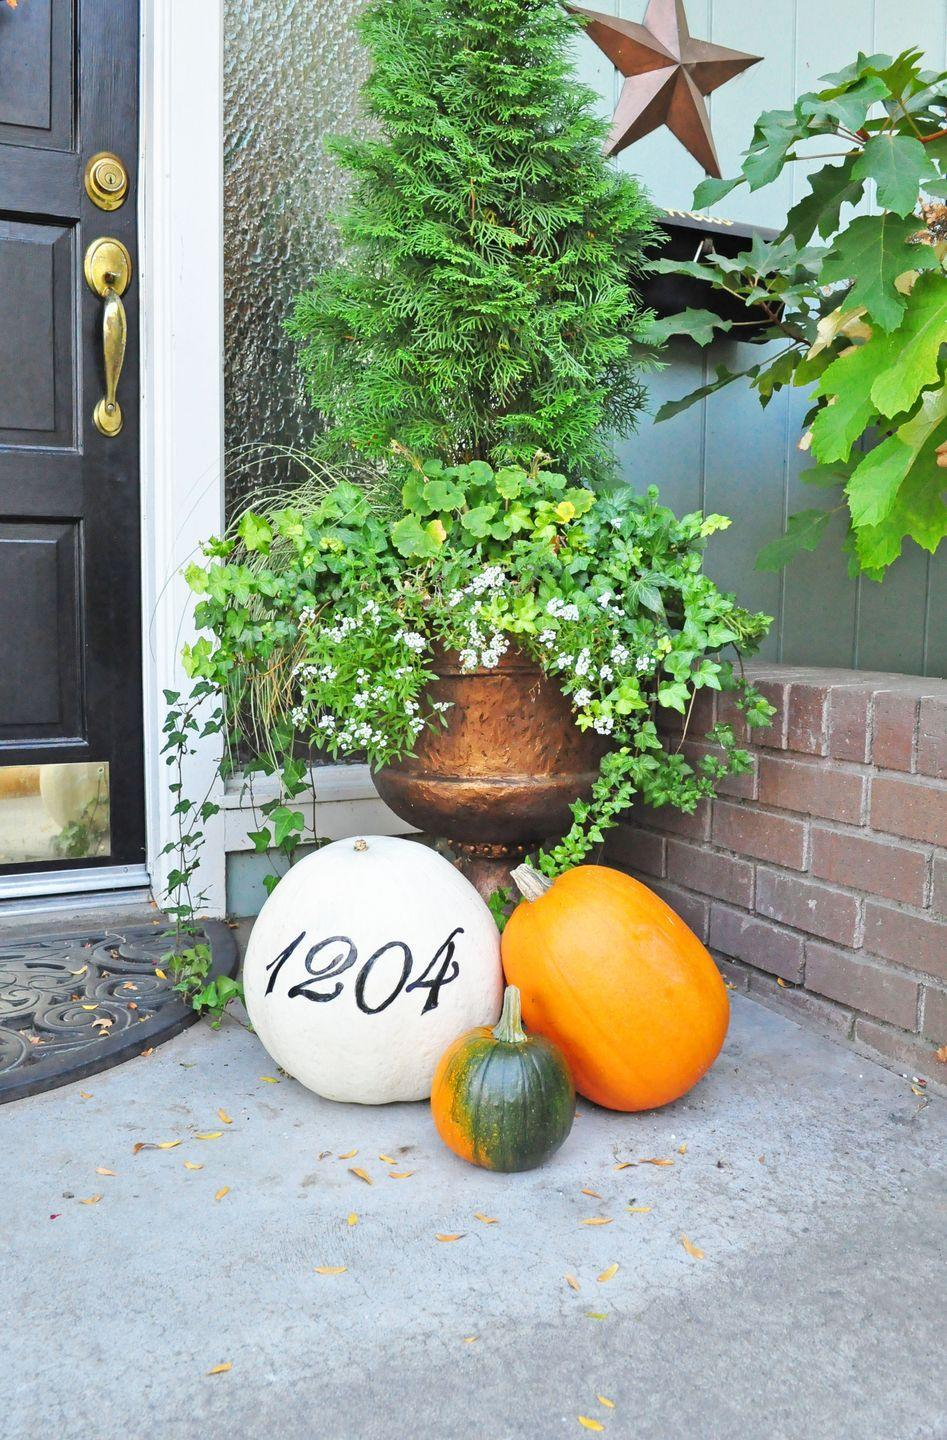 """<p>Let's make """"painting"""" even easier — Sharpie your home's digits (three coats will do it!) on a pumpkin for a sweet fall welcome.</p><p><em><a href=""""http://www.creativelylivingblog.com/2012/10/day-11-house-number-pumpkins.html"""" rel=""""nofollow noopener"""" target=""""_blank"""" data-ylk=""""slk:Get the tutorial at Creatively Living »"""" class=""""link rapid-noclick-resp"""">Get the tutorial at Creatively Living »</a></em></p>"""